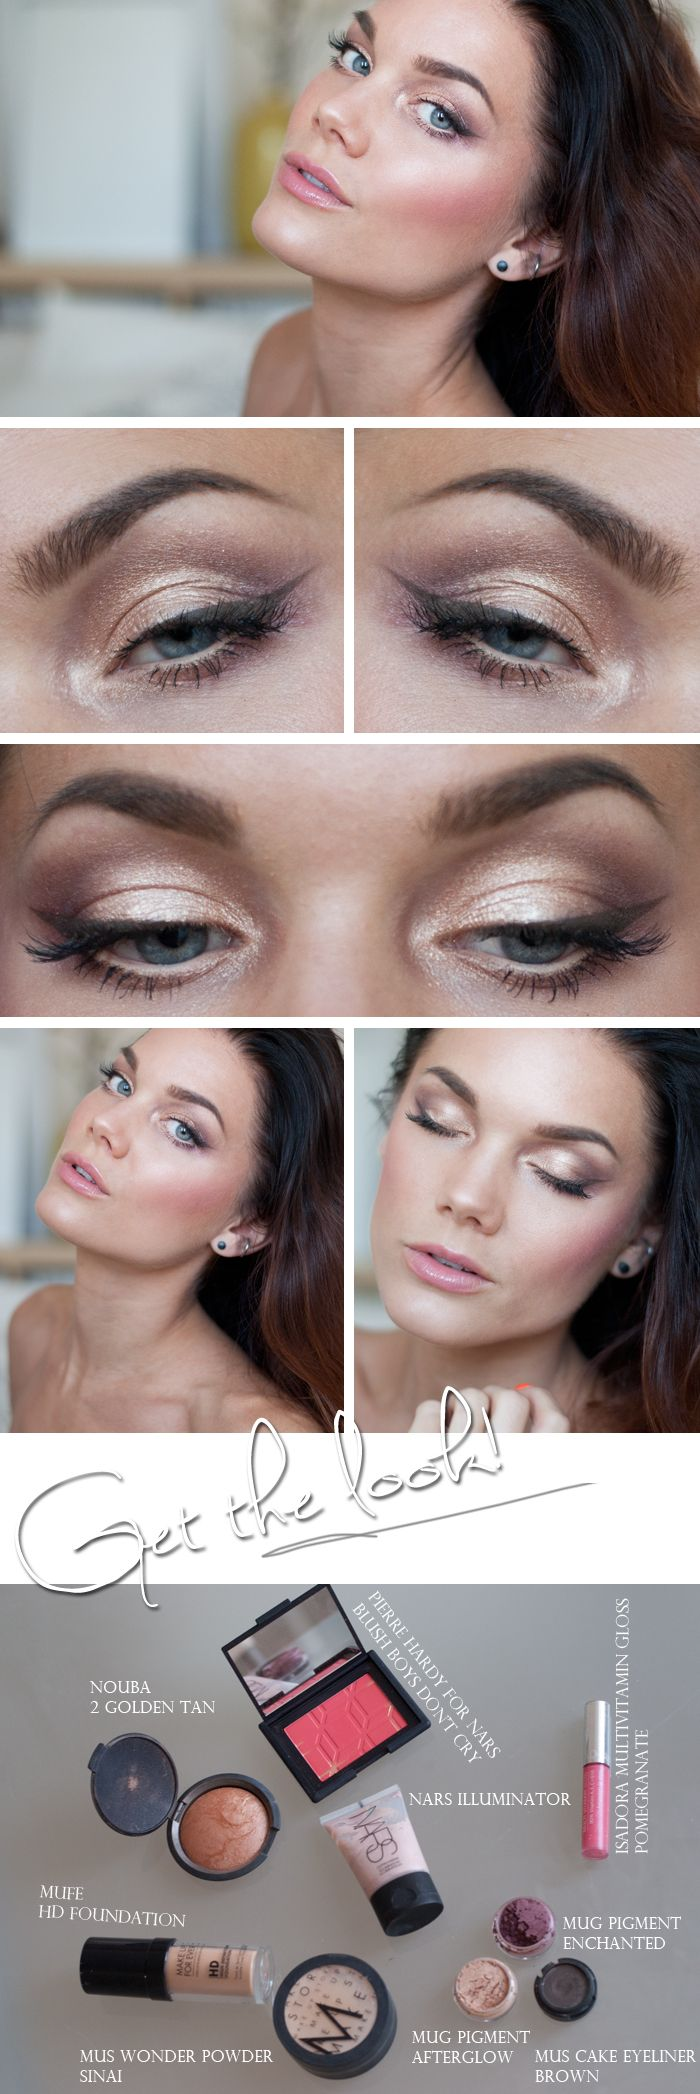 Todays look – With the lips of an angel |